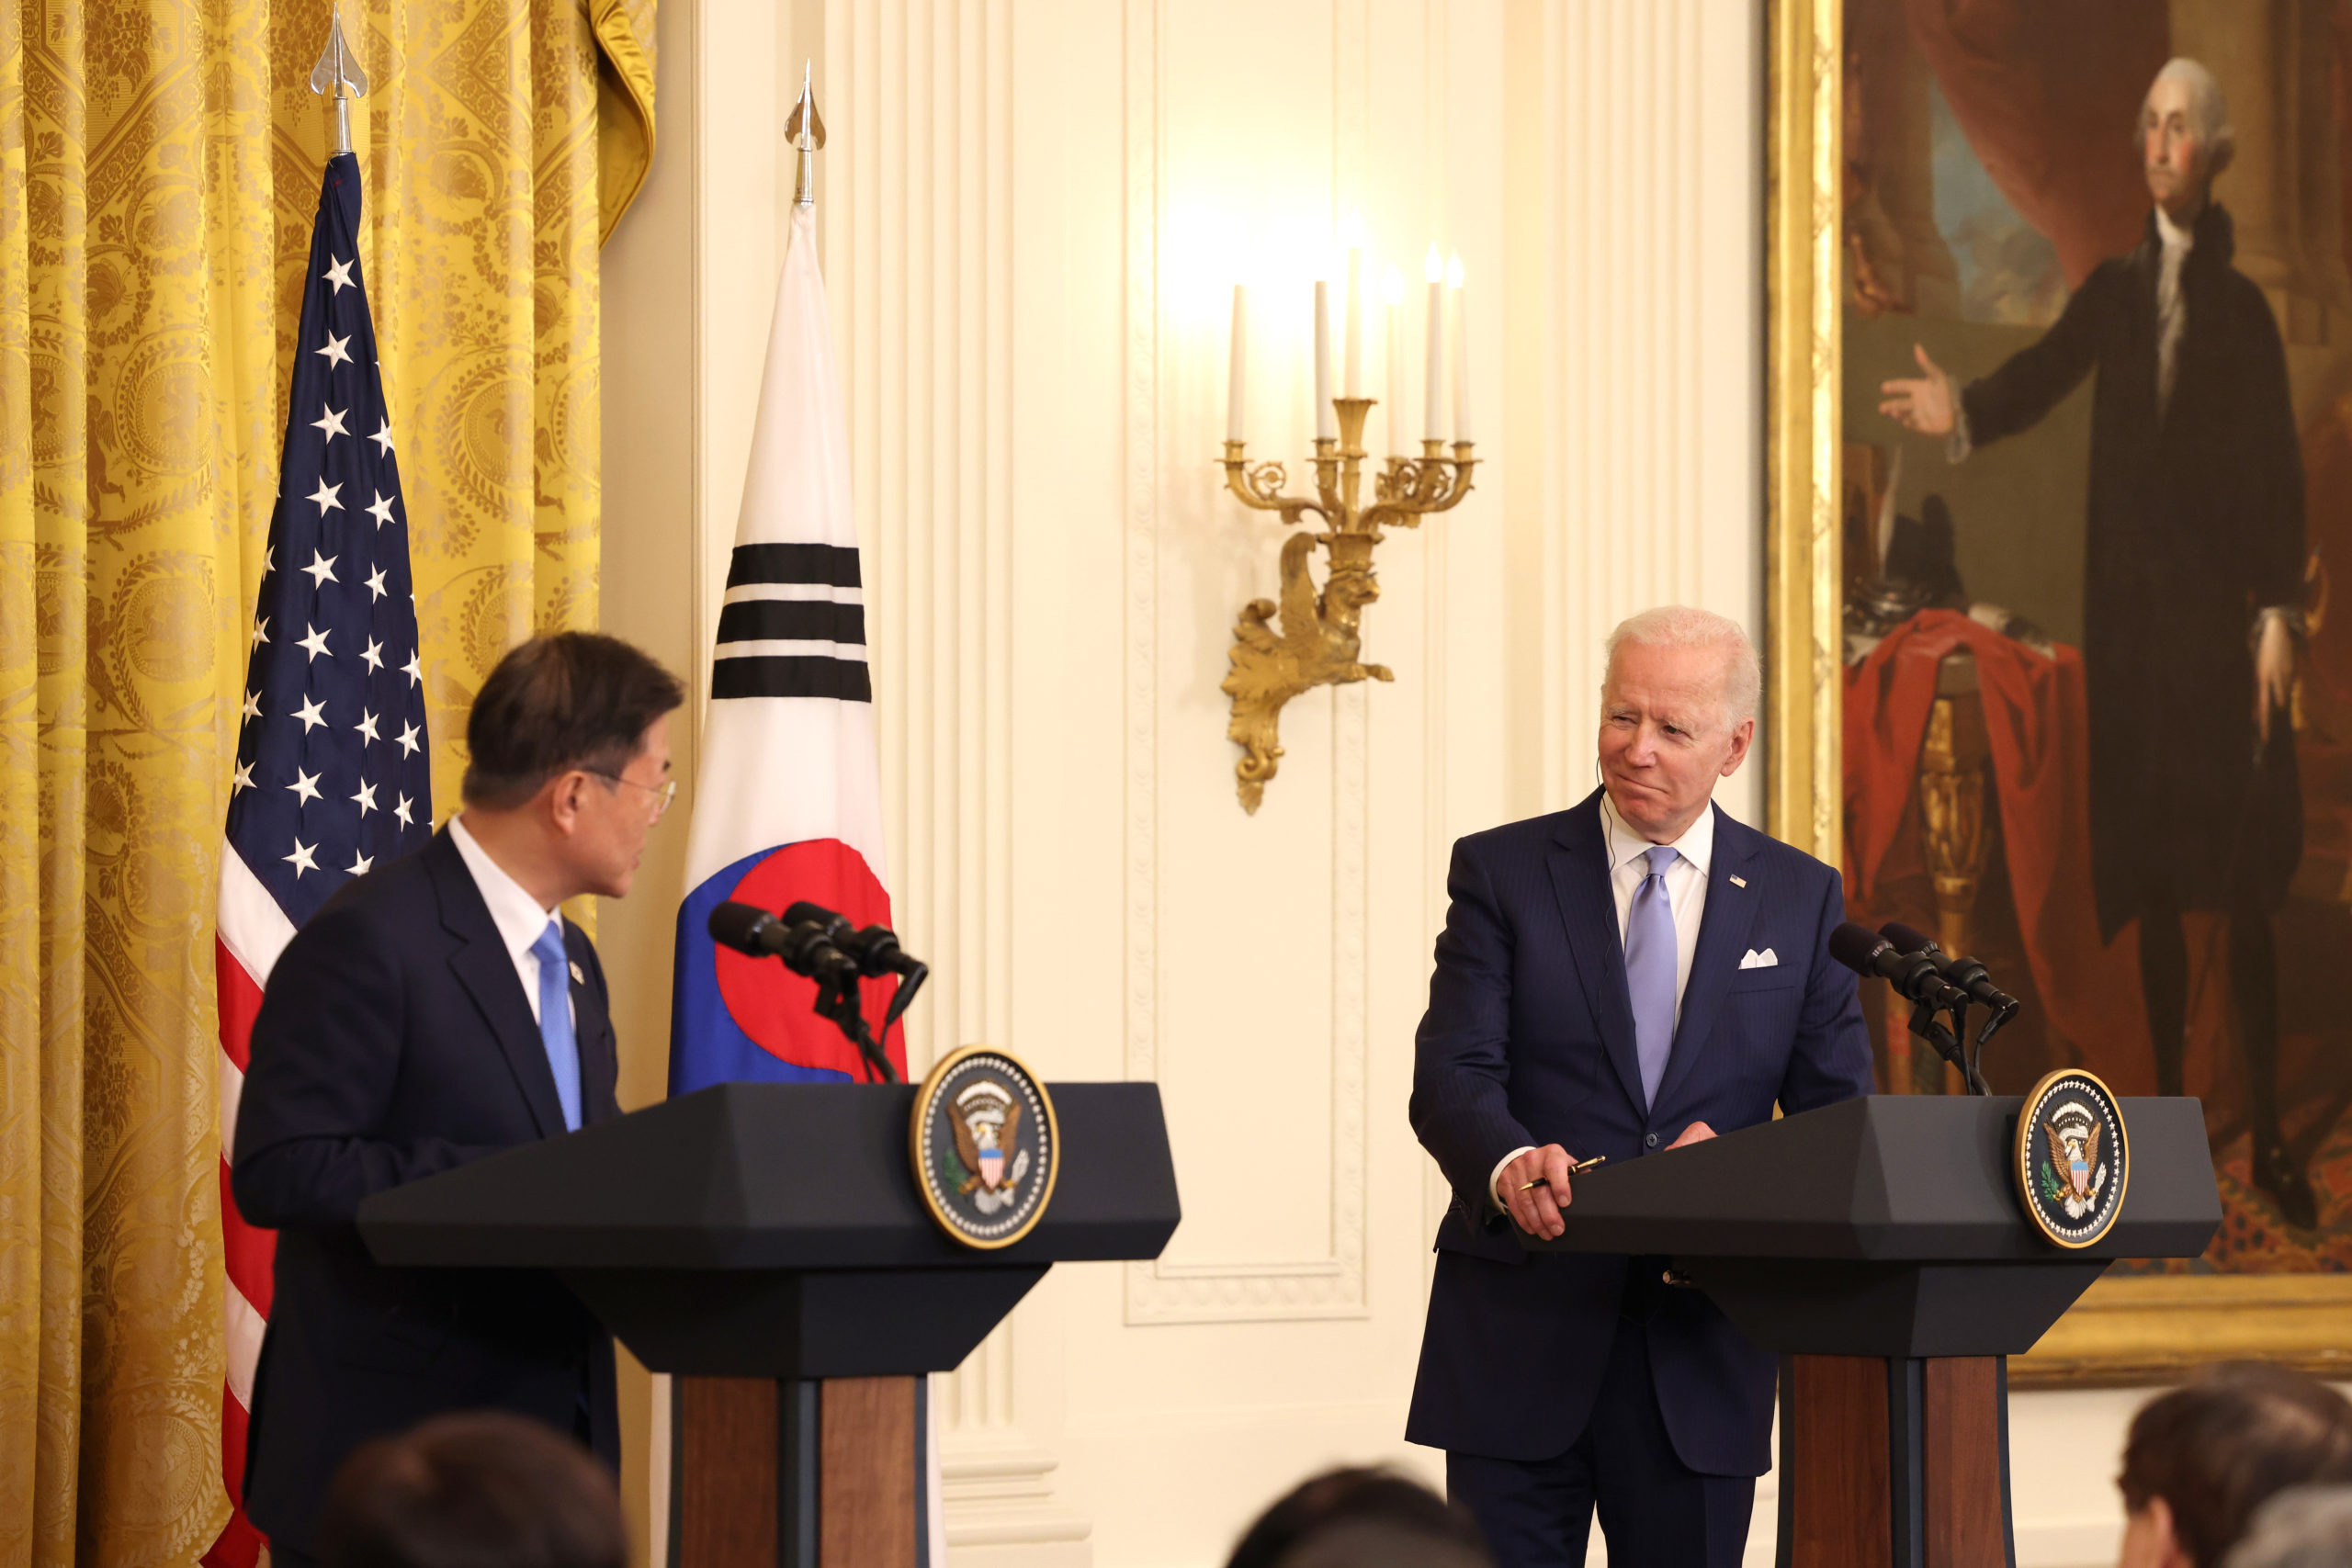 WASHINGTON, DC - MAY 21: U.S. President Joe Biden (R) and South Korean President Moon Jae-in participate in a joint press conference in the East Room of the White House on May 21, 2021 in Washington, DC. Moon Jae-in is the second world leader to be hosted by President Biden at the White House. (Photo by Anna Moneymaker/Getty Images)